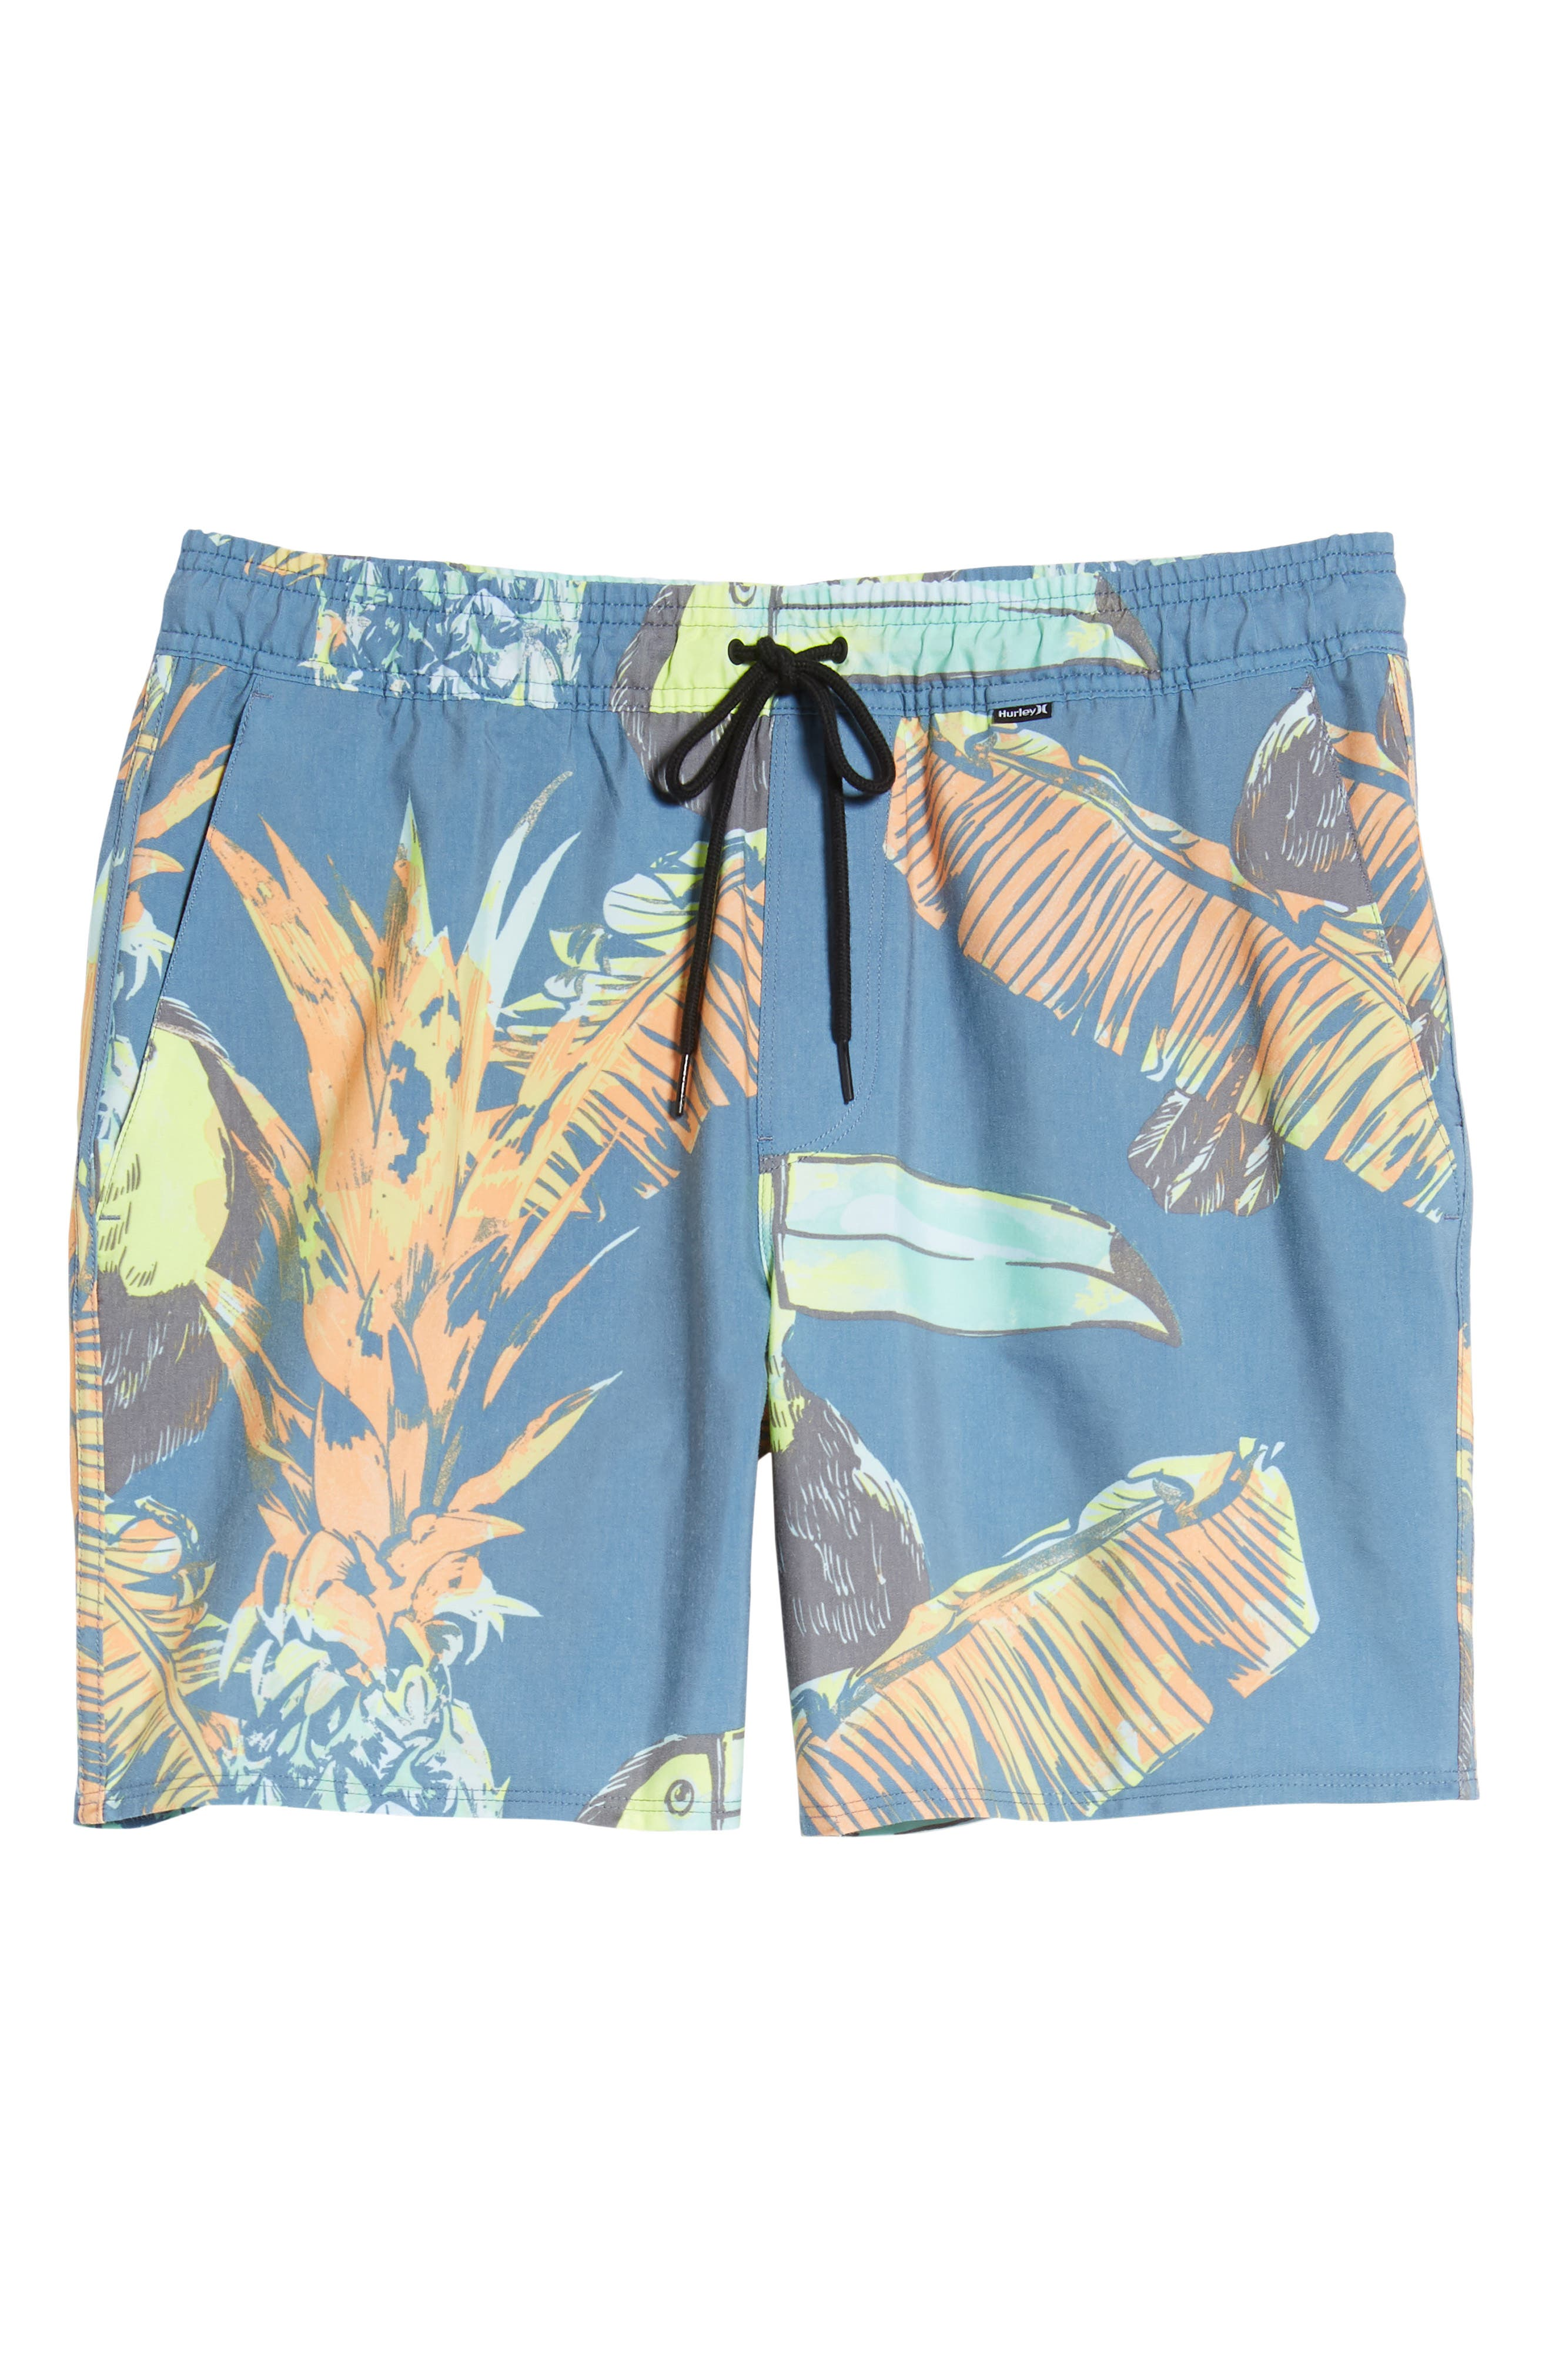 HURLEY,                             Paradise Volley Board Shorts,                             Alternate thumbnail 6, color,                             474